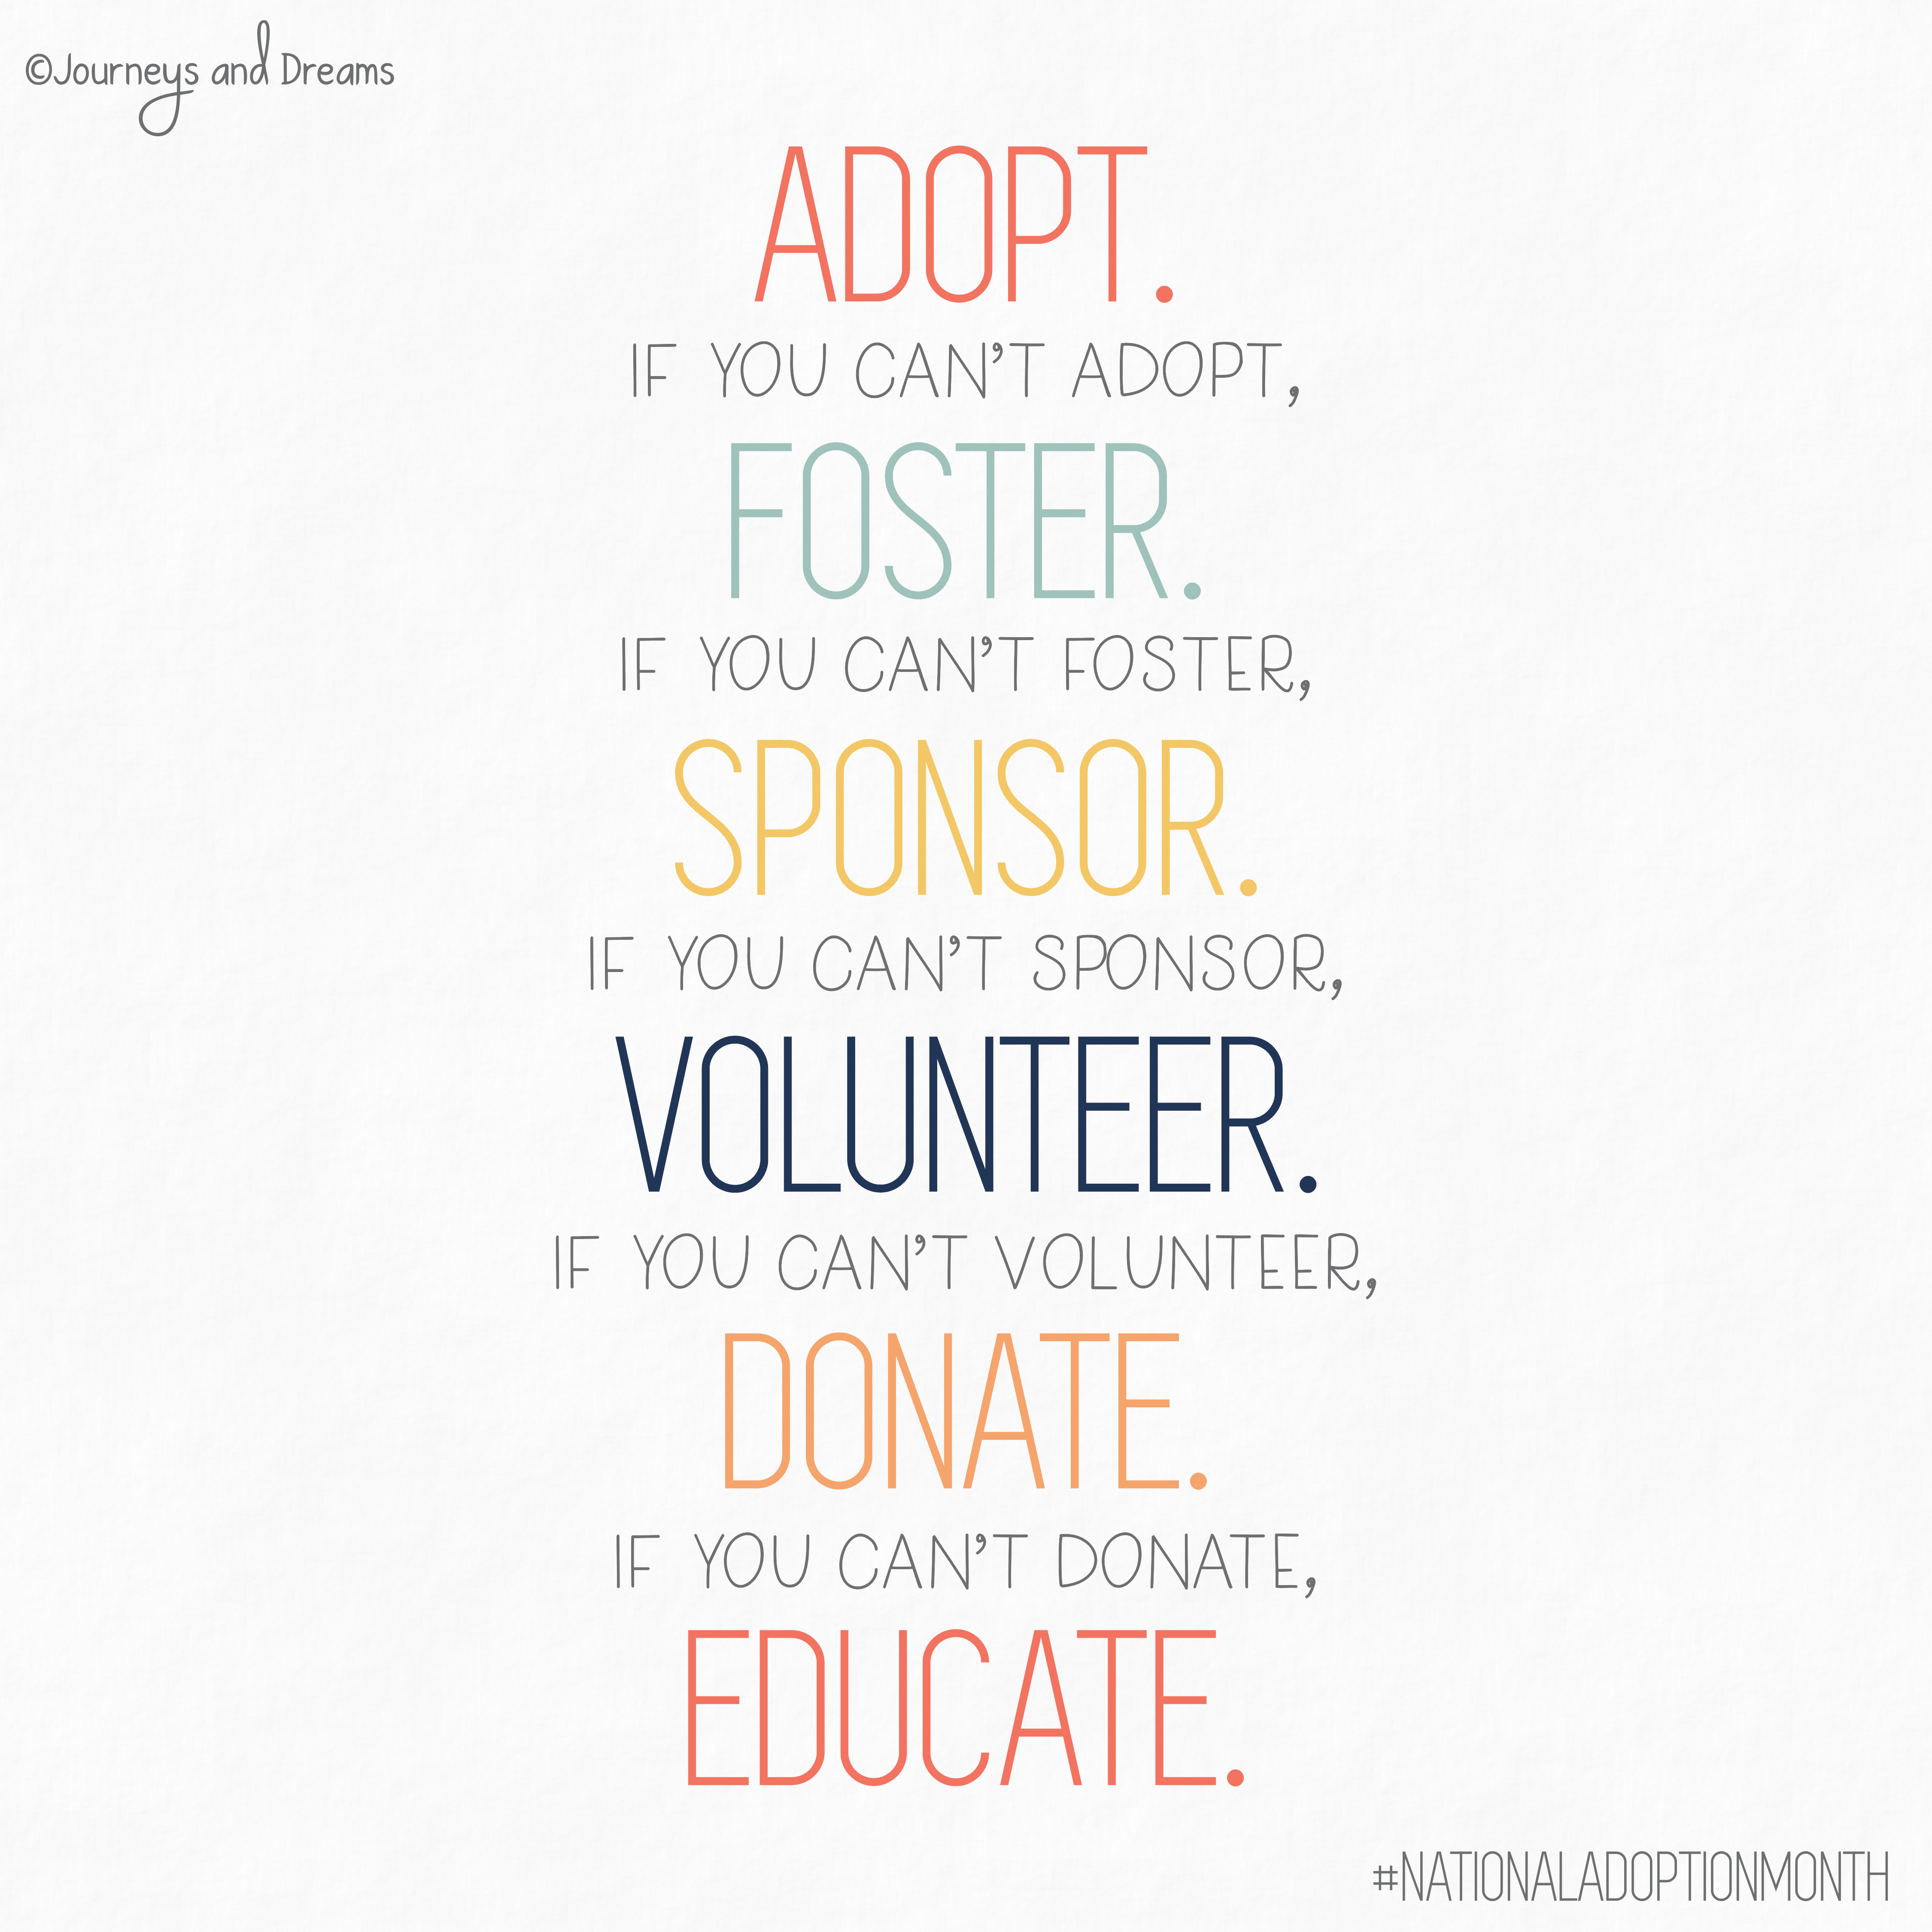 Adoption Quotes | Foster Care Quotes | National Adoption Month | National Adoption Day | Adoption Day | Gotcha Day | Adoption | Foster Care | Adoption Blog | Foster Care Blog | Adoption Binder | Adoption Paperwork | Home Study | Adoption Organization | Planner | Printable |  Journeys And Dreams |   Adopt Foster Sponsor Volunteer Donate Educate #adoptionquotes